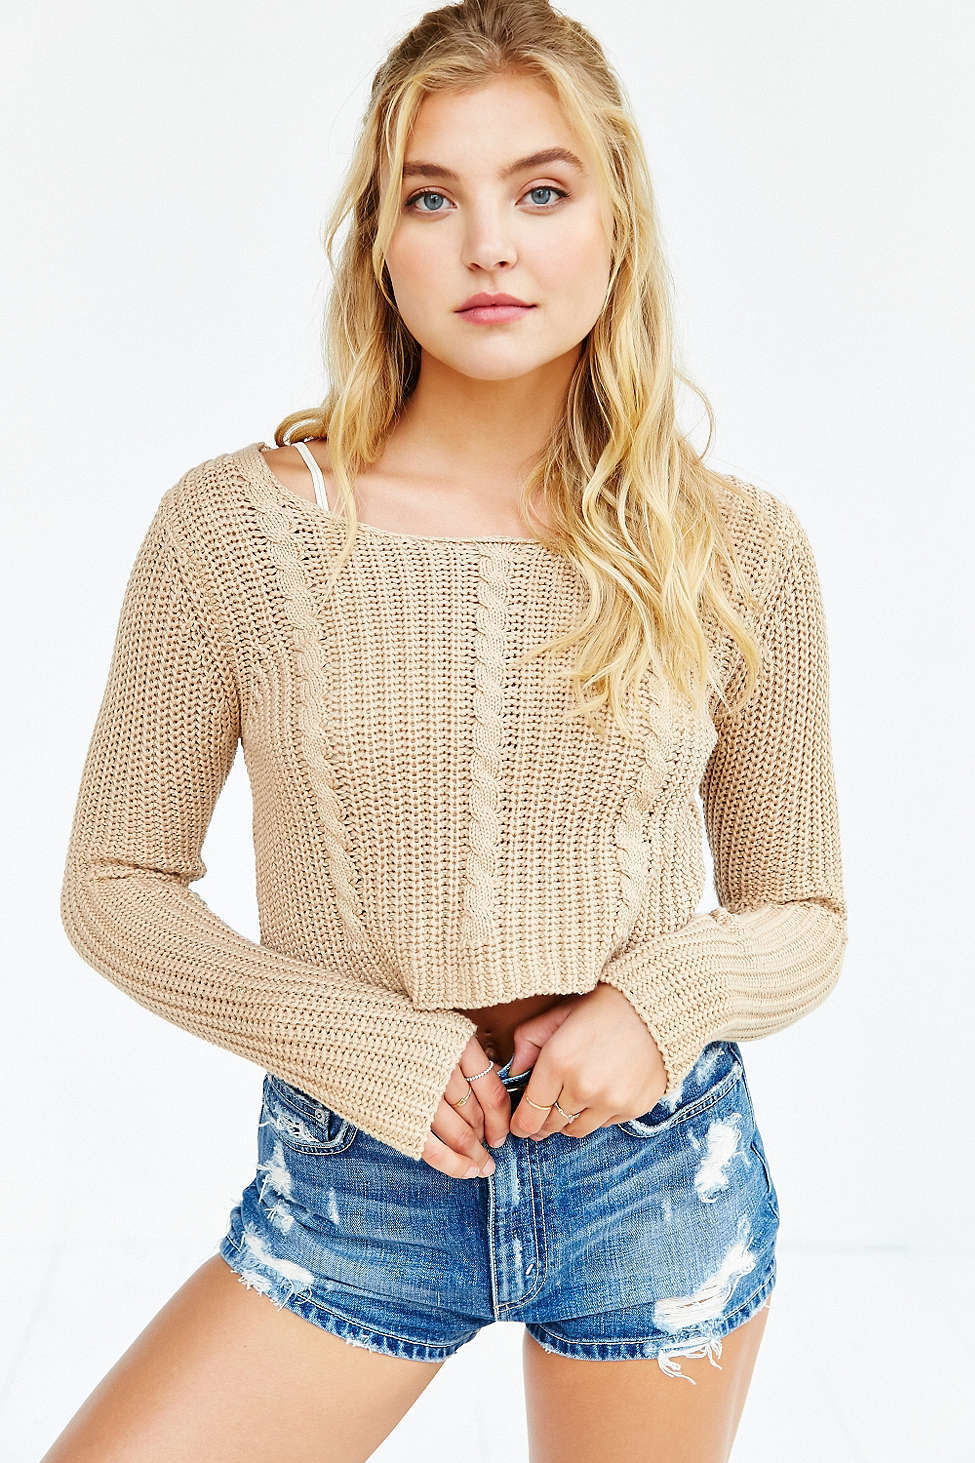 Unif X Uo Cropped Cable-knit Sweater in Brown | Lyst